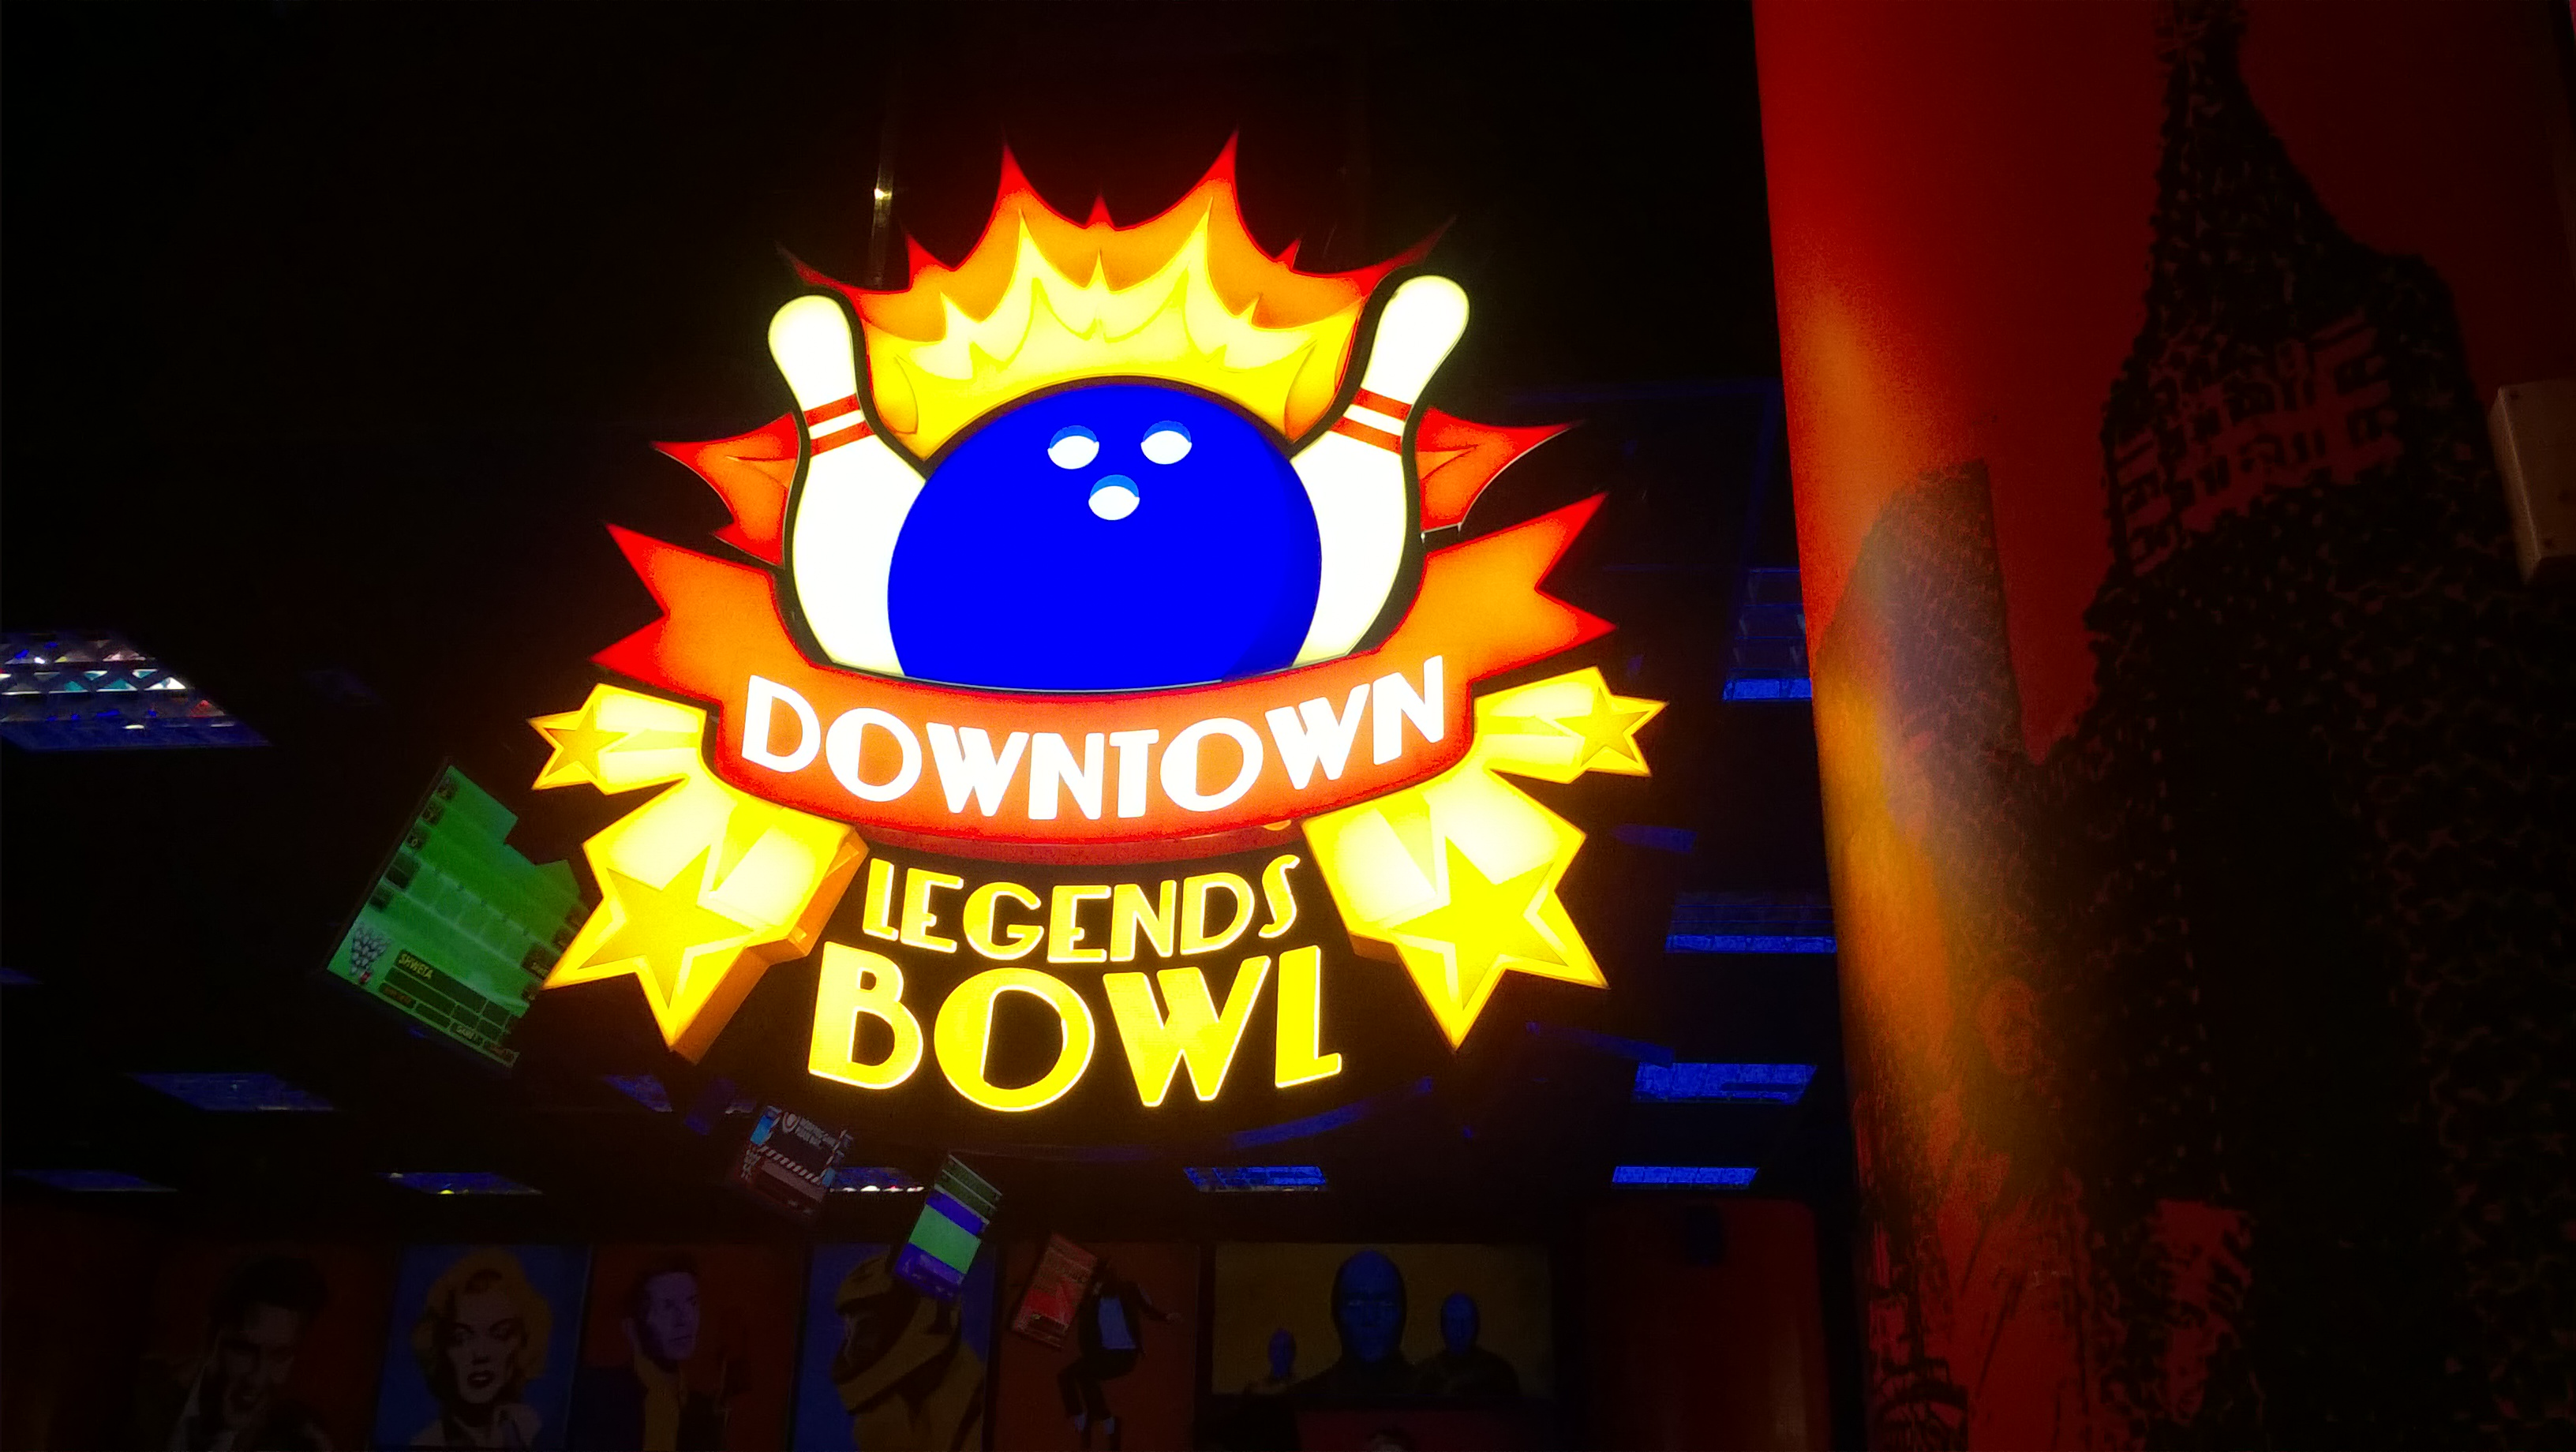 Downtown Legends Bowl at The Gaming Vegas of Noida